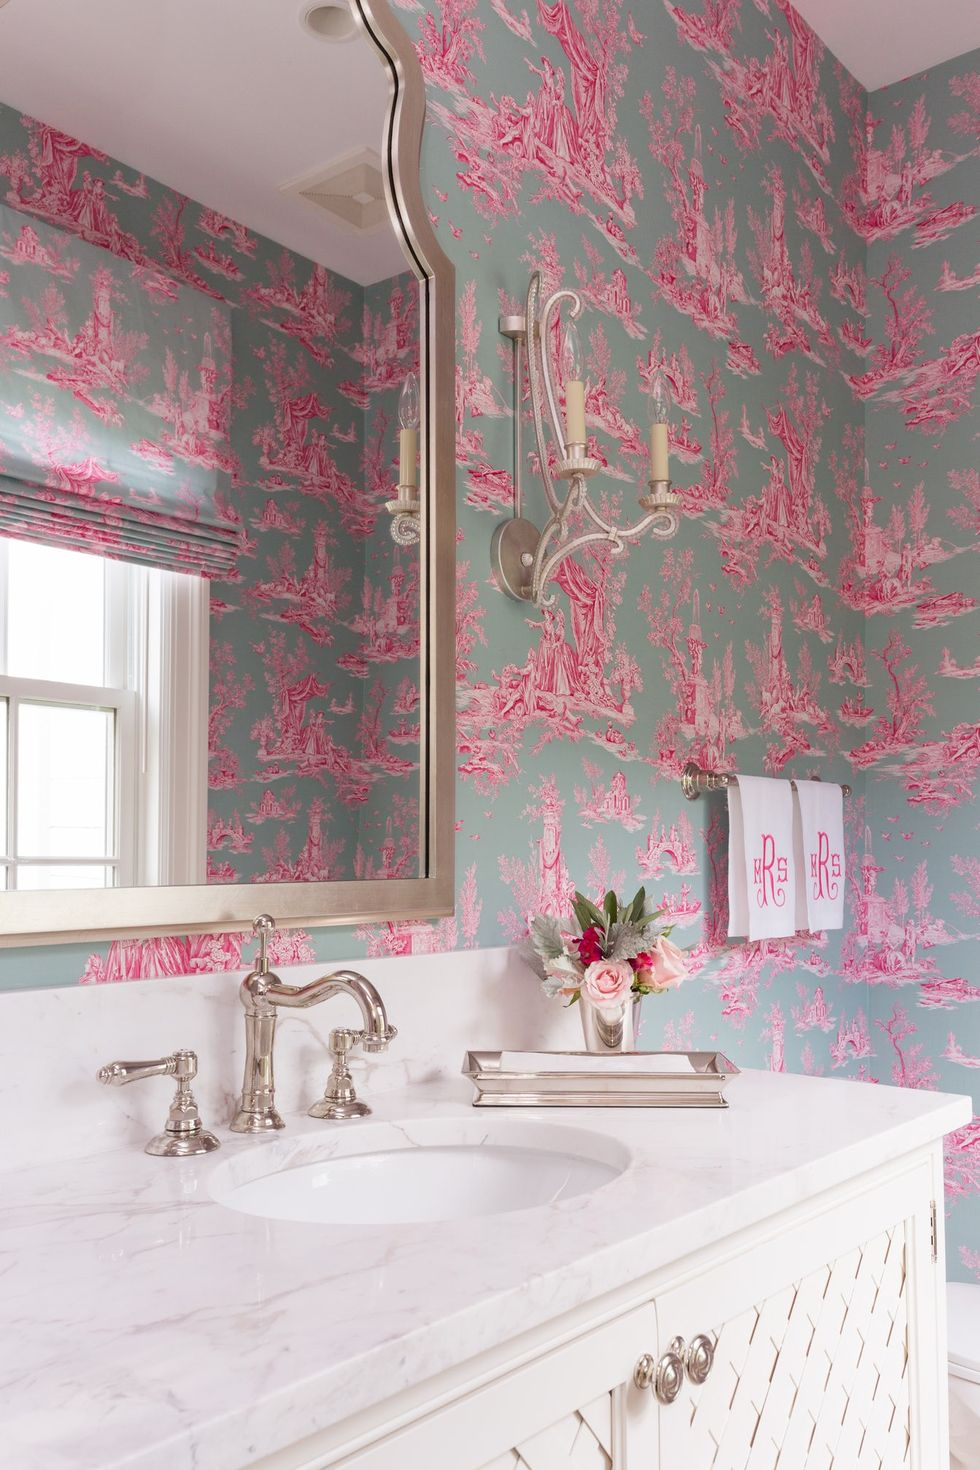 These Toile Wallpaper Ideas Will Transform Your Home Into A French Country Cottage Powder Room Design Toile Wallpaper French Country Cottage